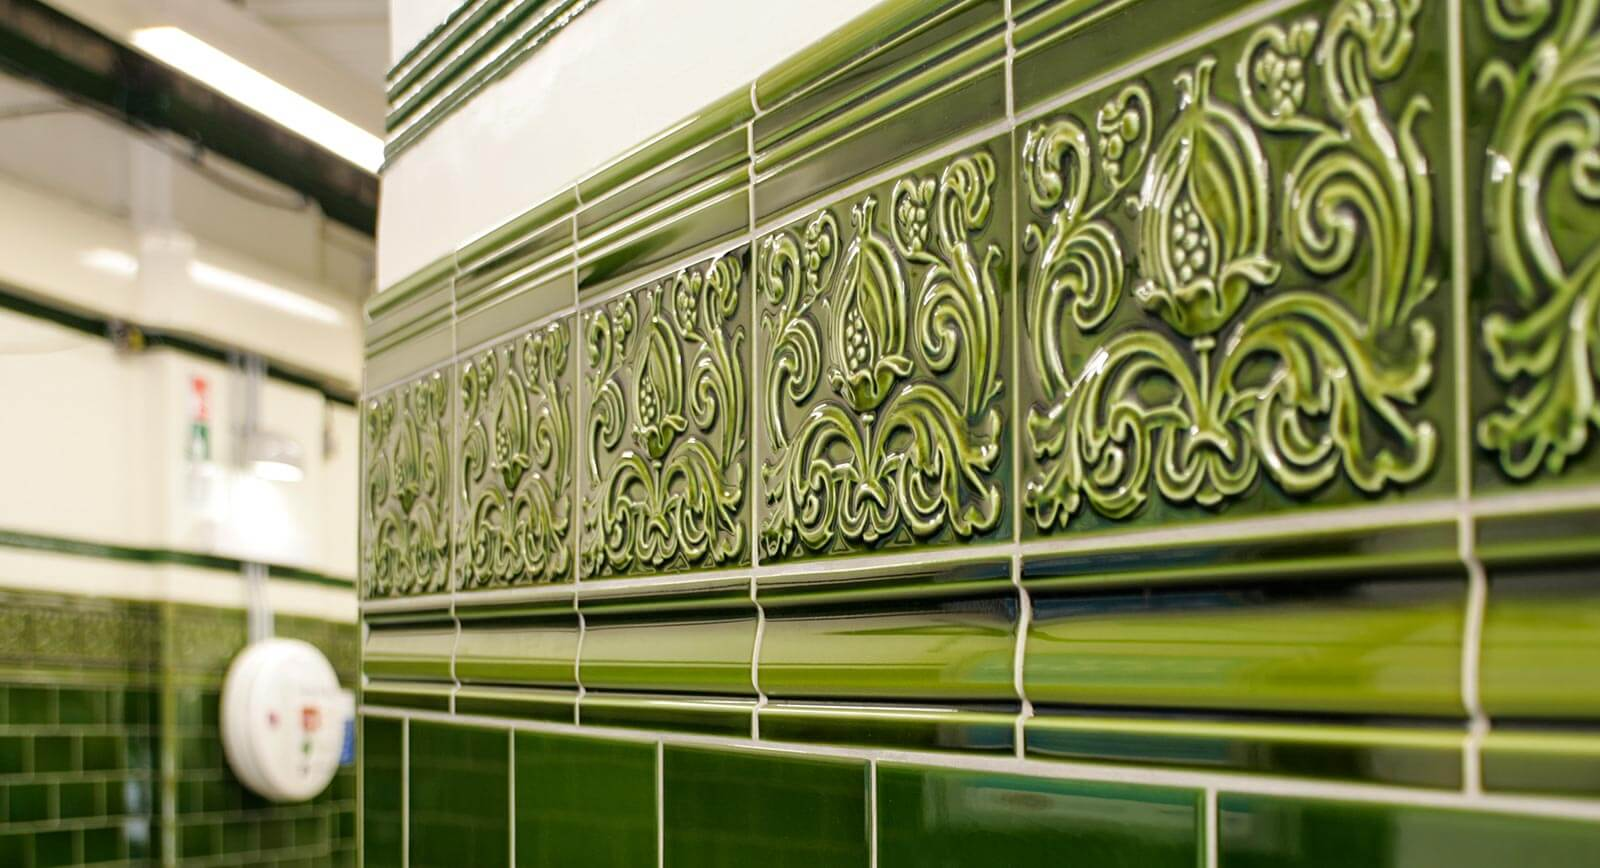 Subway Tile H Amp E Smith Ltd Hanley Stoke On Trent